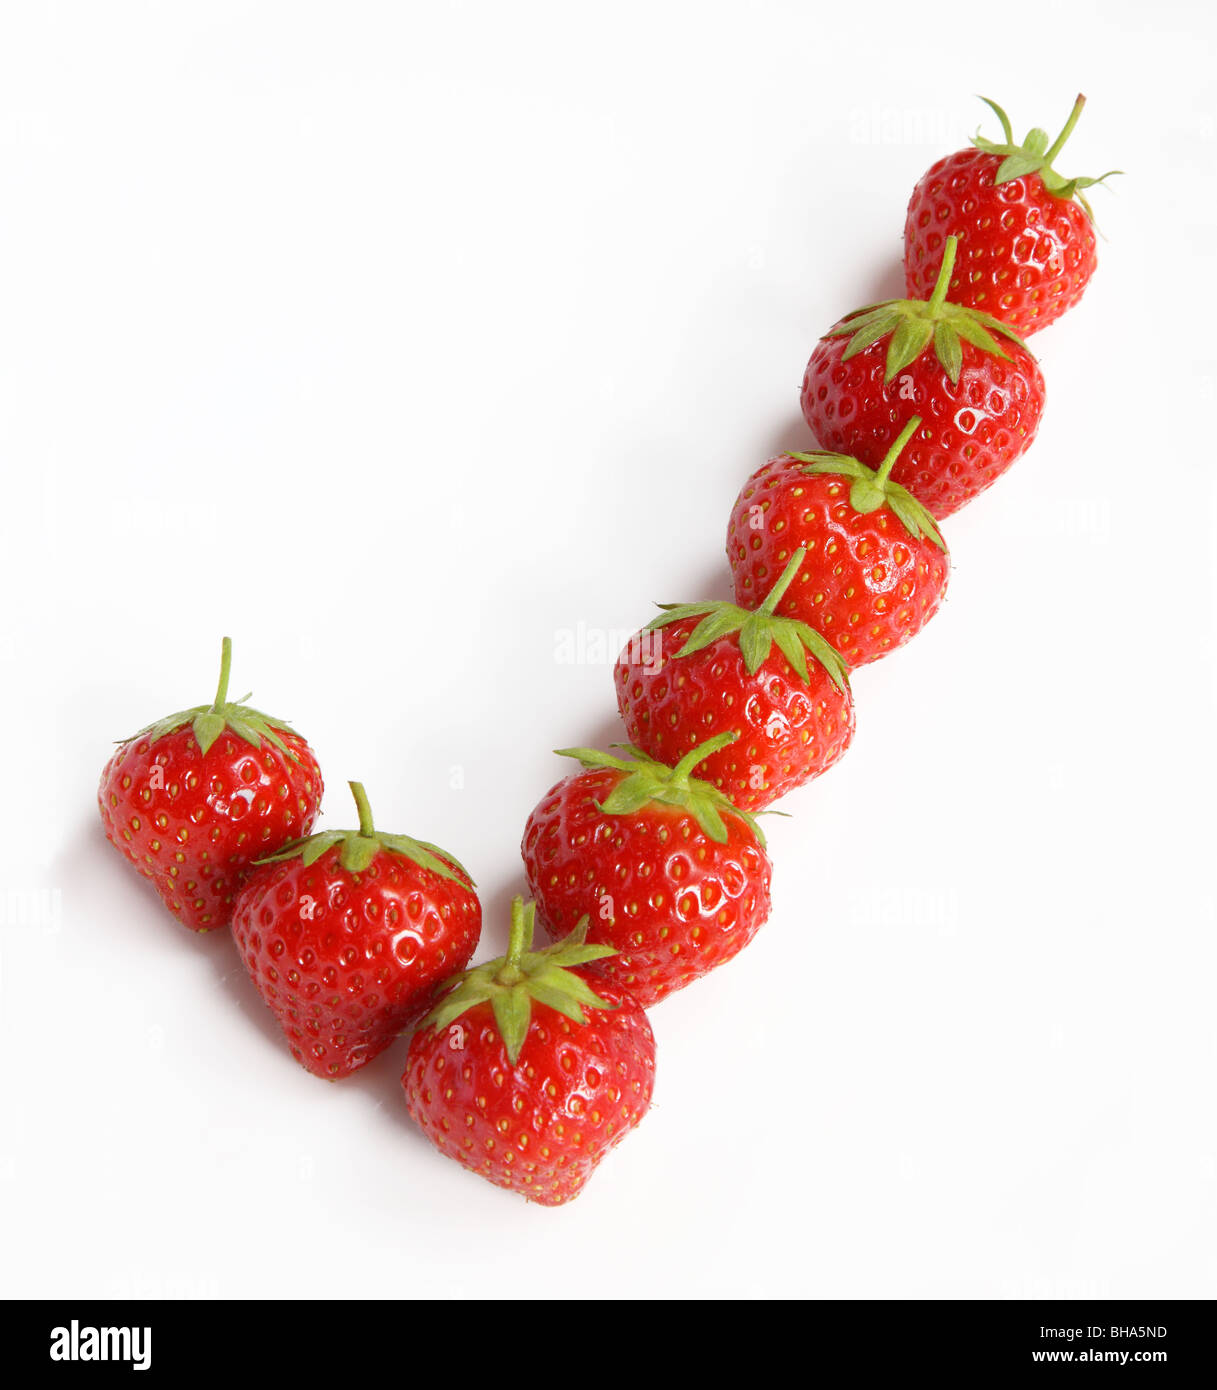 Eight ripe, fresh strawberries placed to create a tick or check. - Stock Image